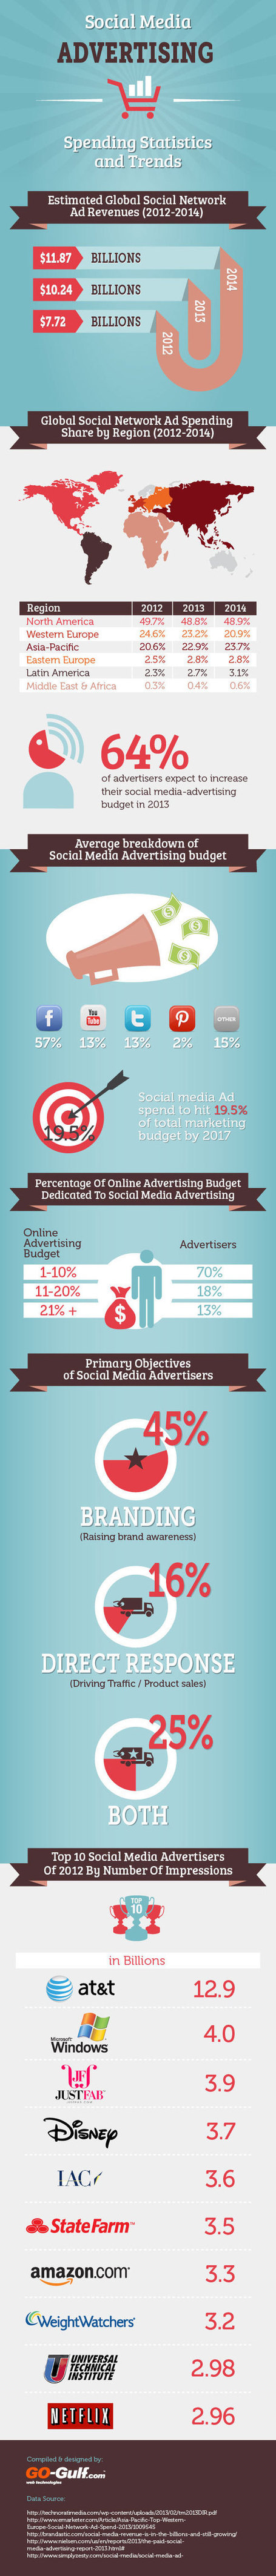 Social Media Advertising Statistics And Trends To Get Your Company Off Its Duff And Online [INFOGRAPHIC]